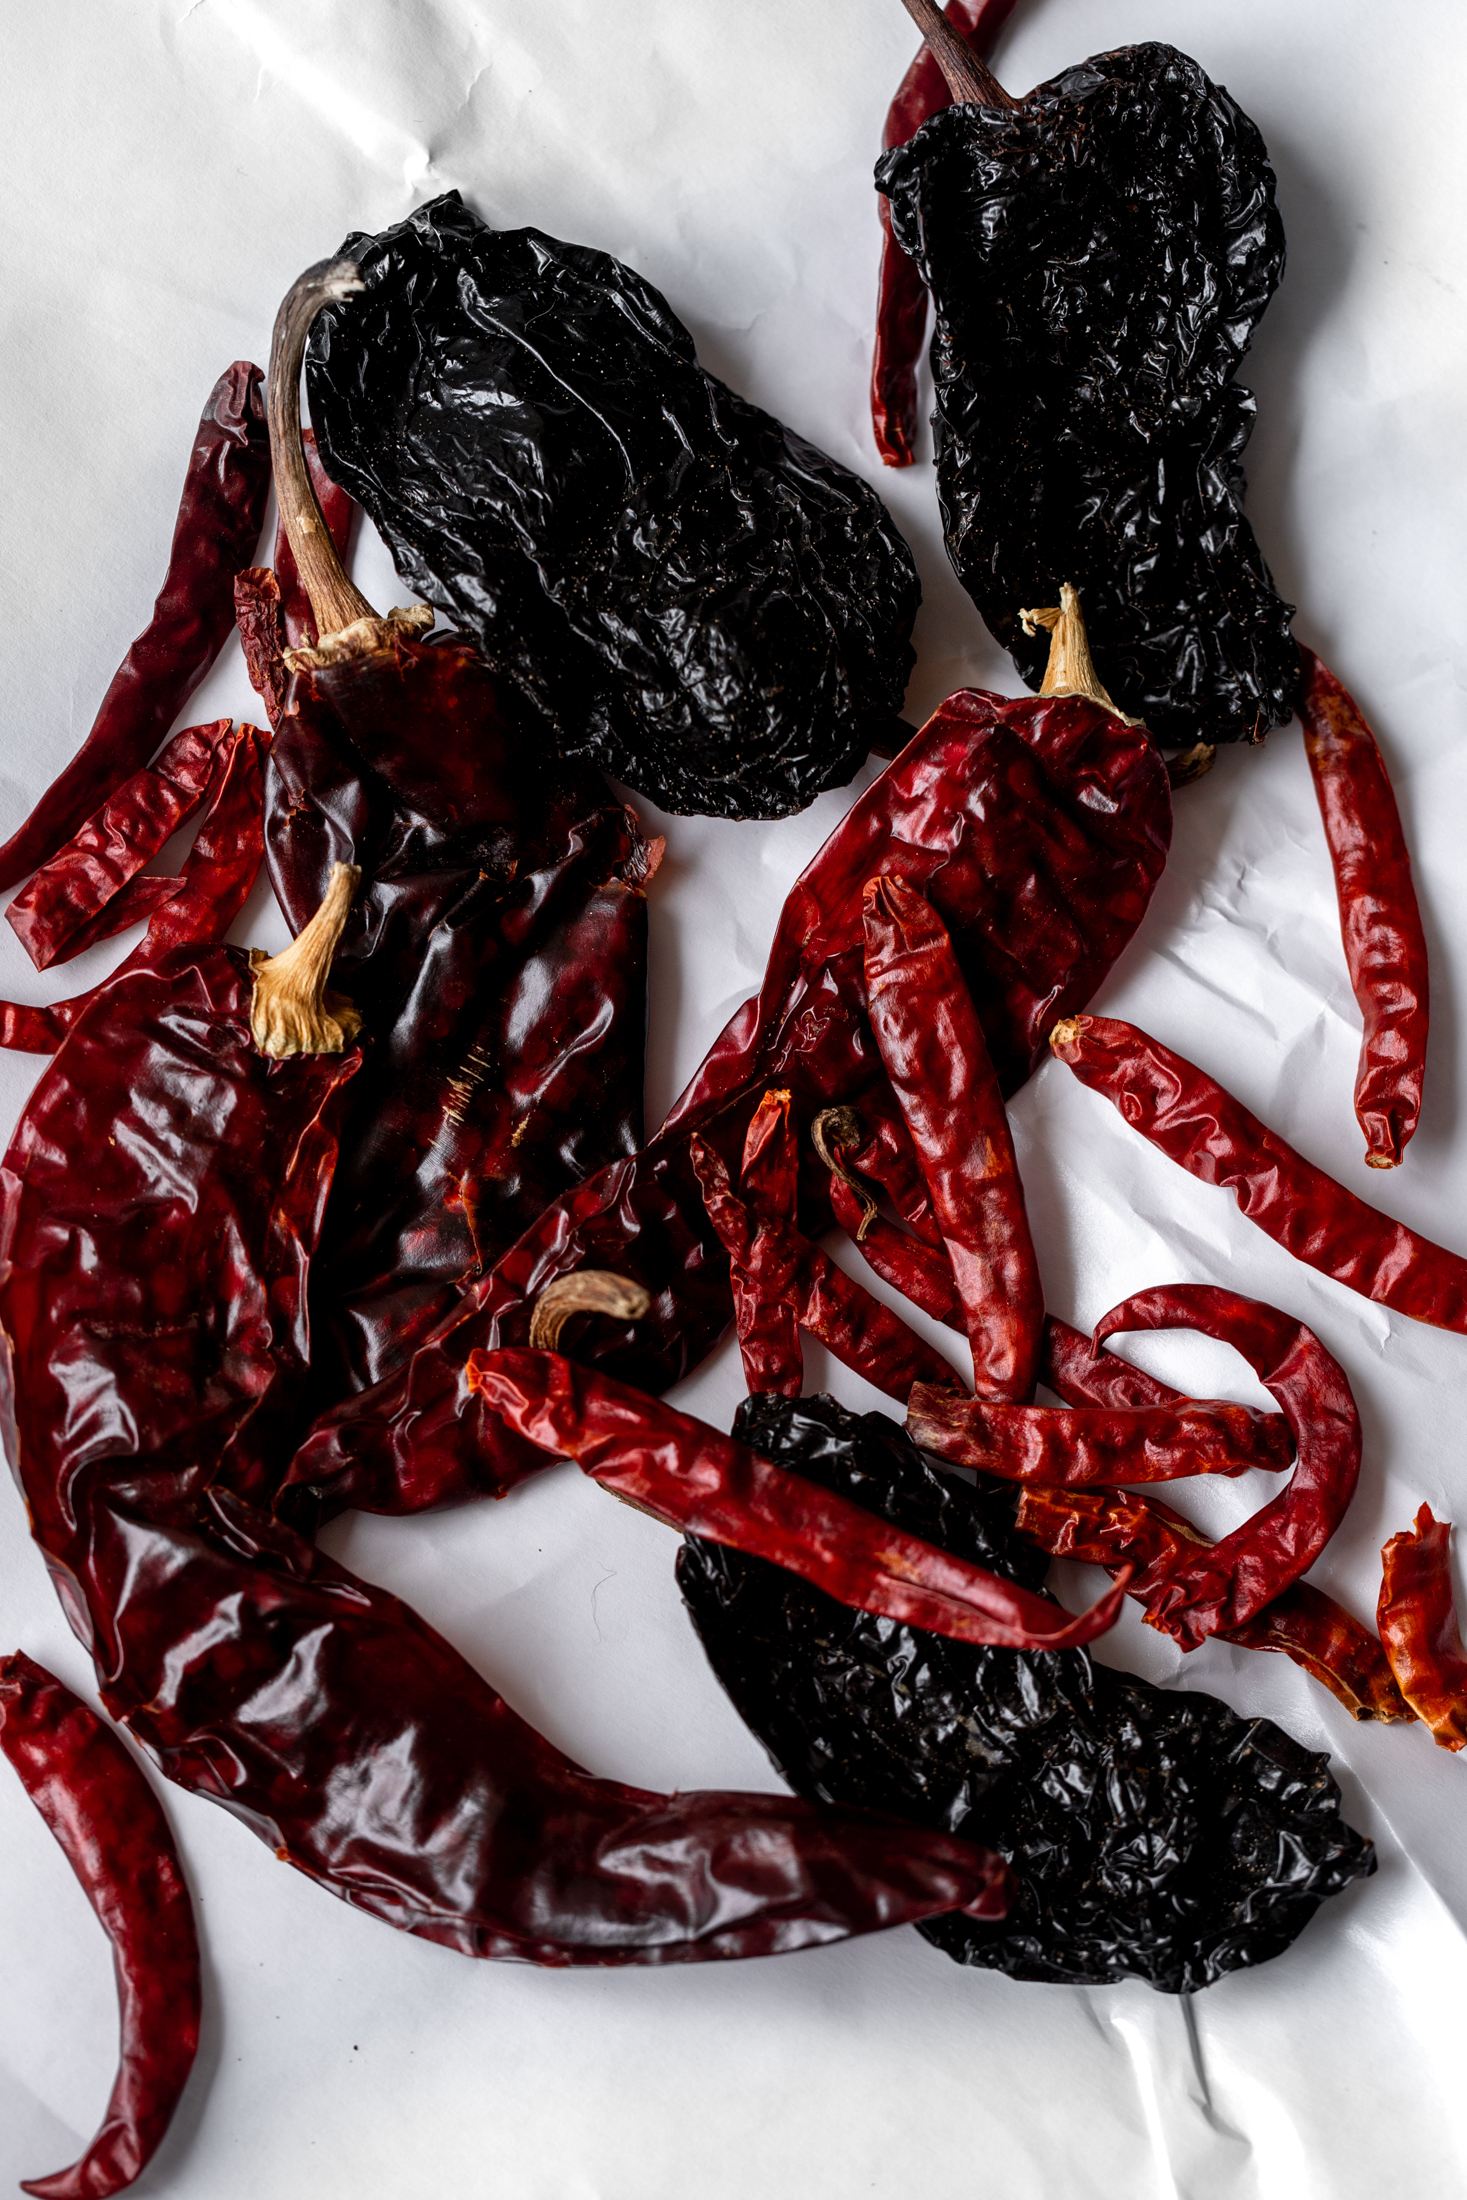 dried chilies ingredient shot